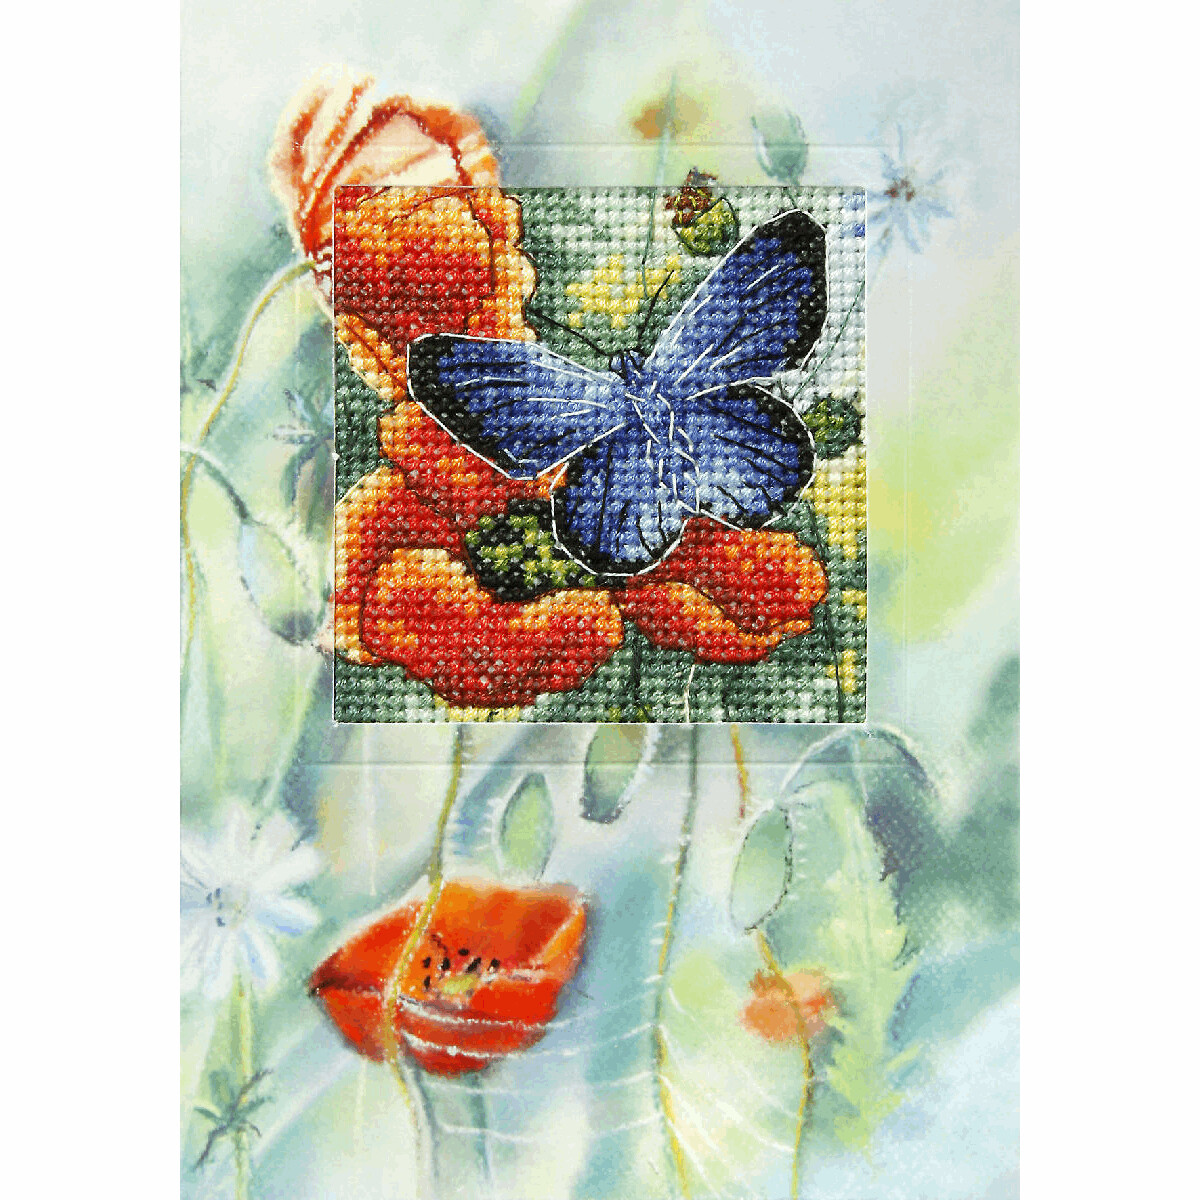 Counted Cross Stitch Kit Greetings Card: Butterfly and Poppies